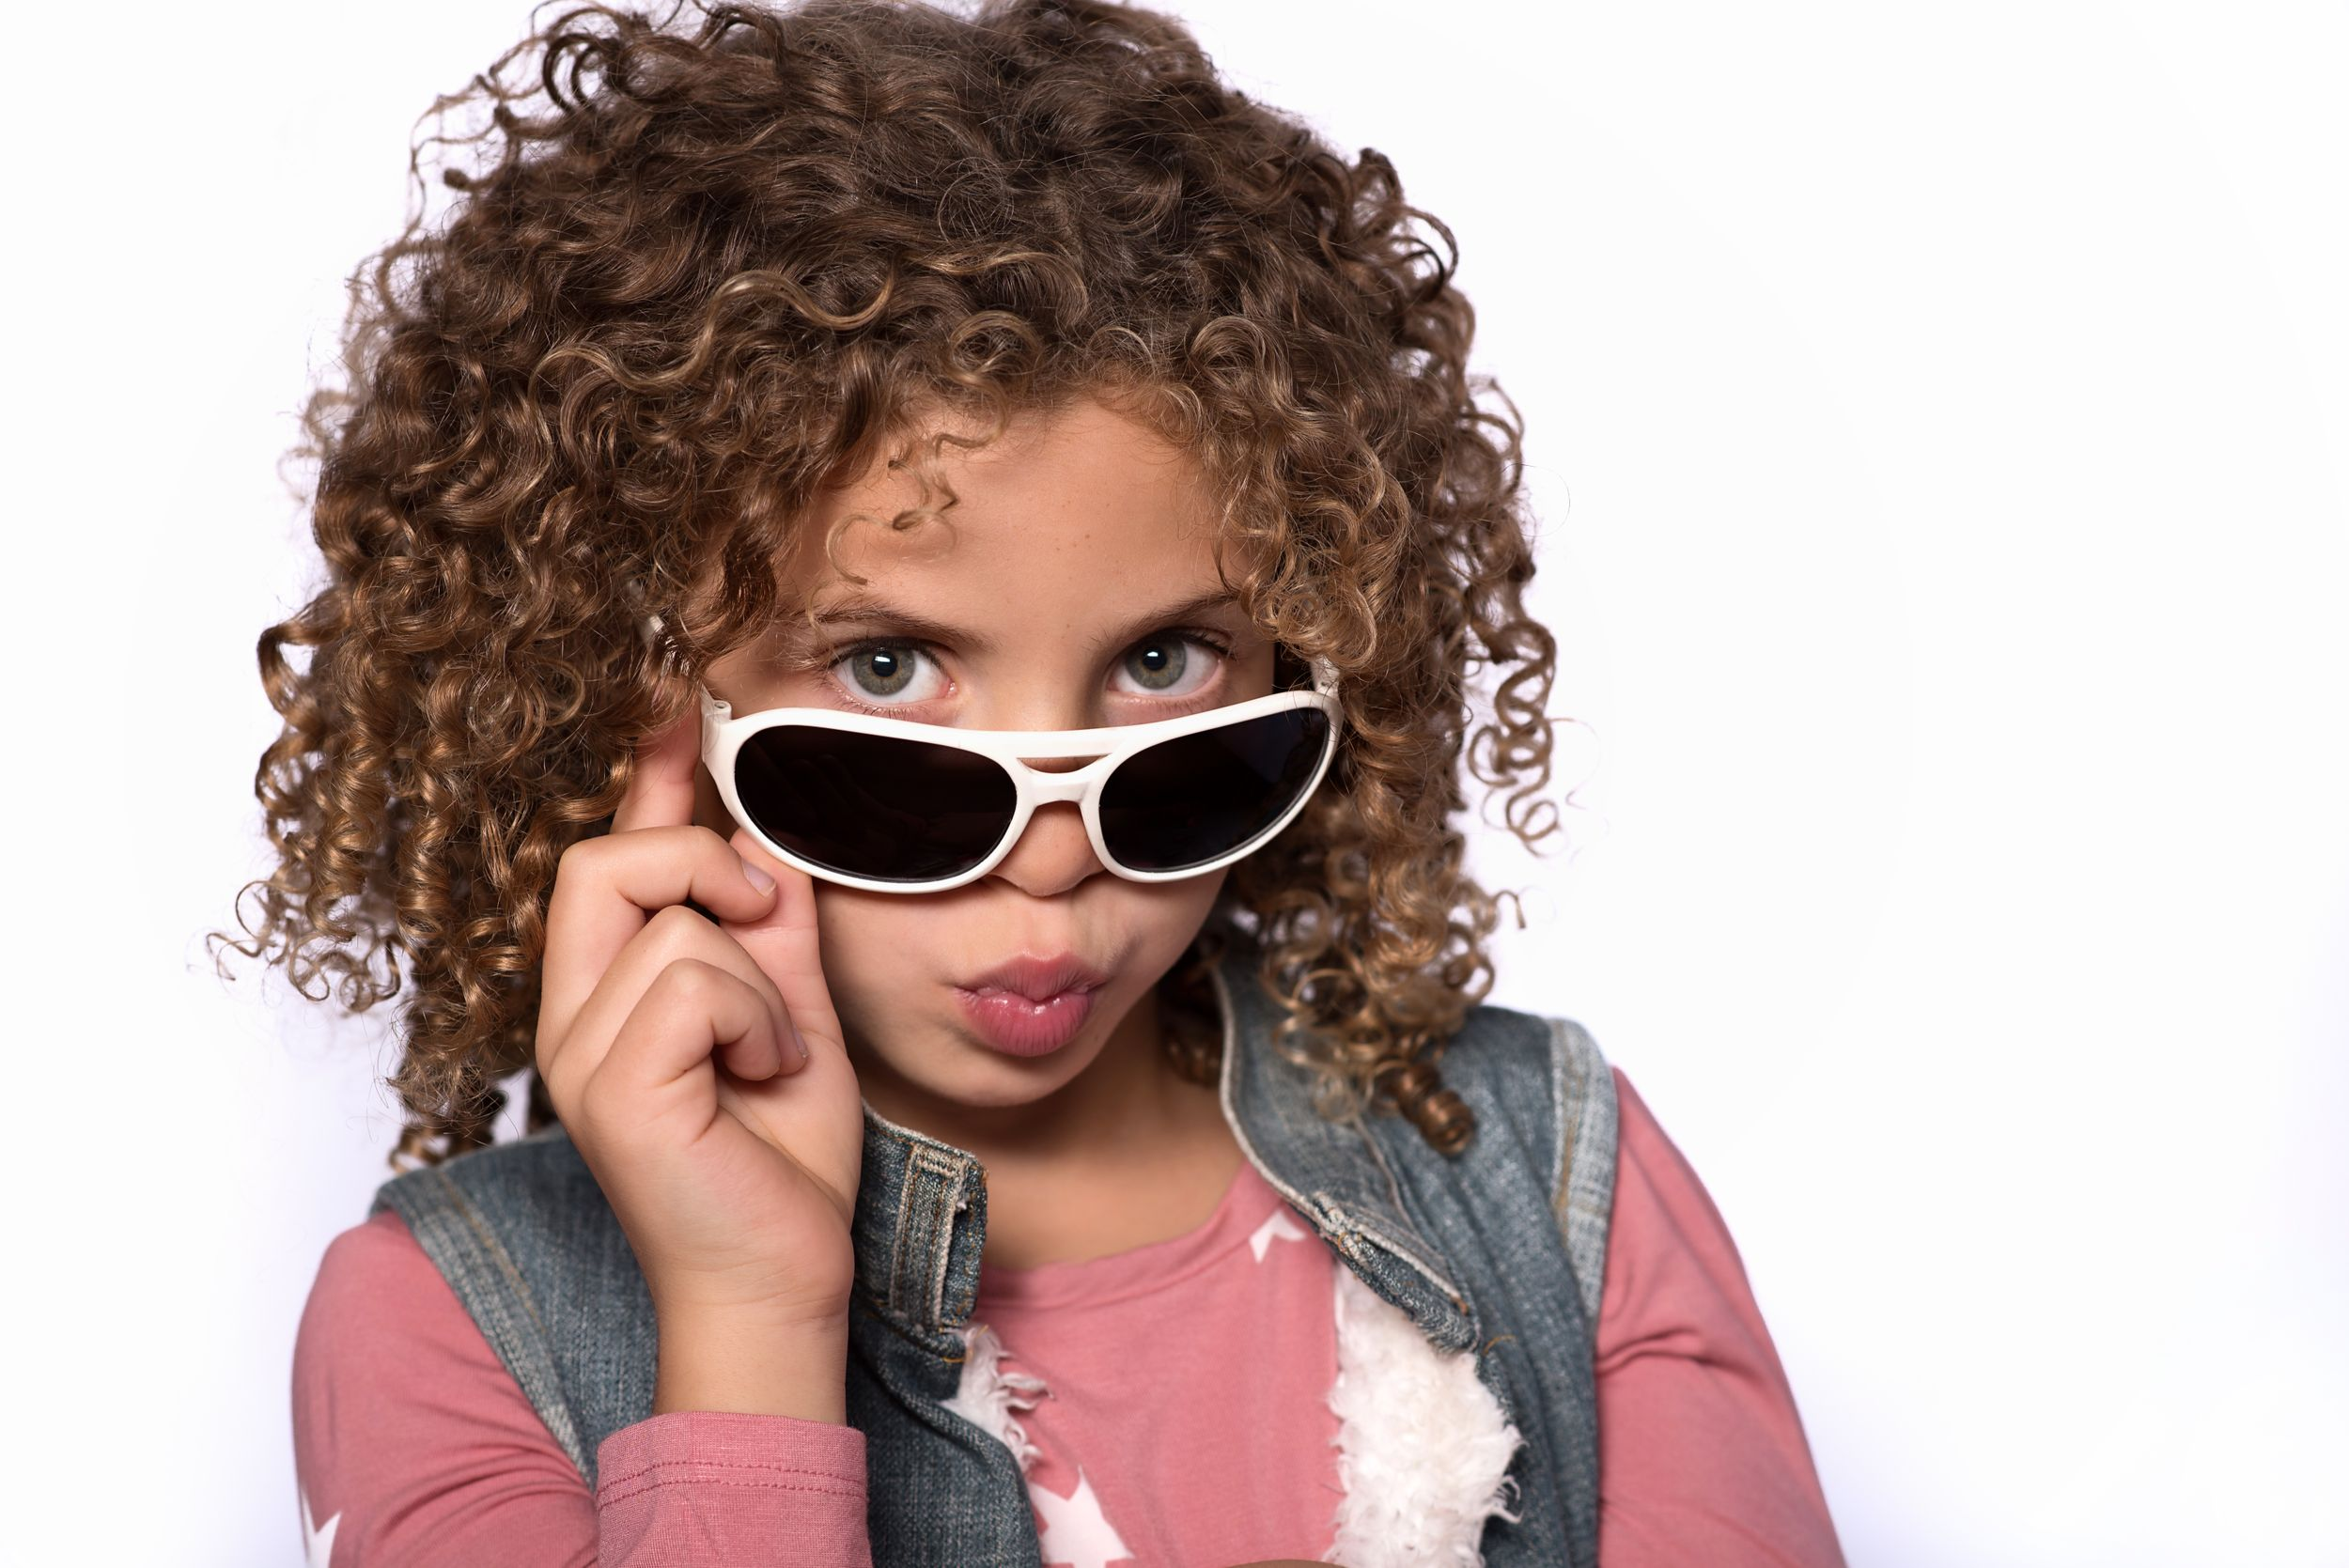 female child model with sunglasses